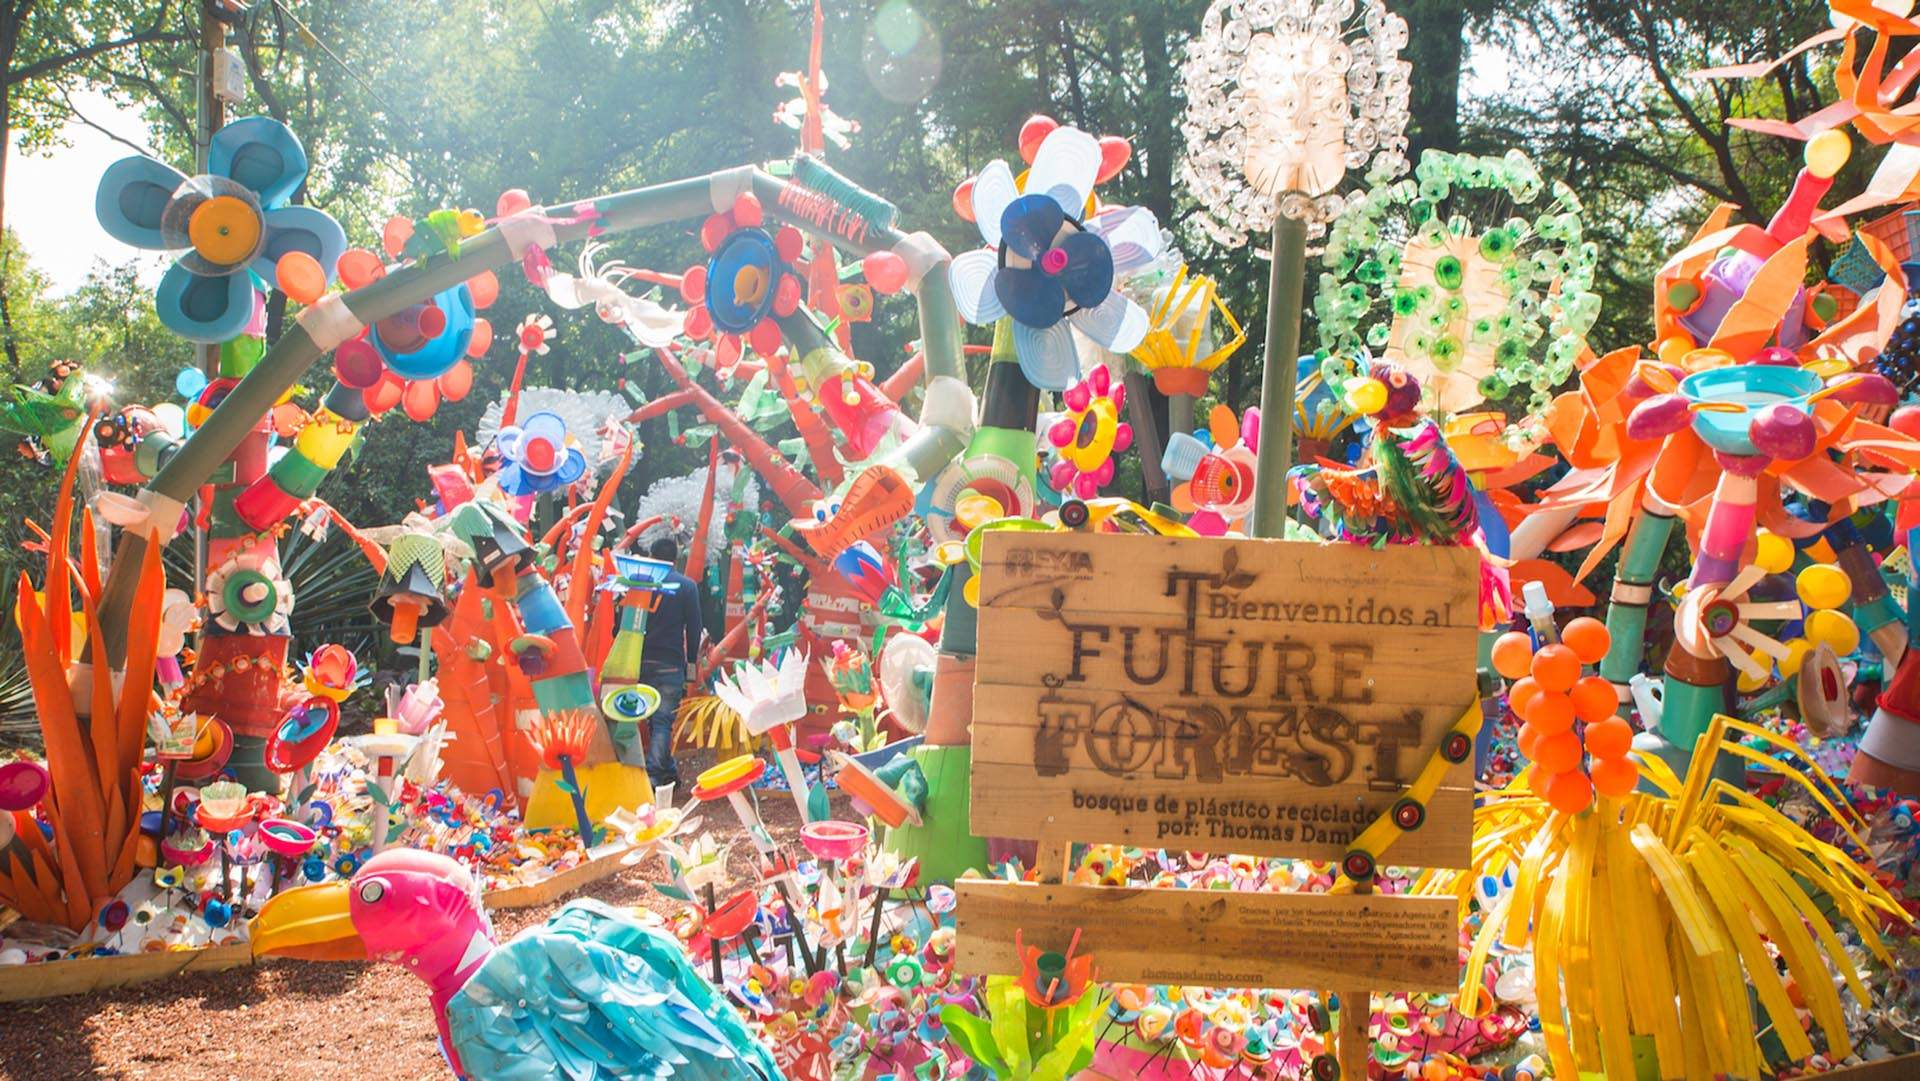 This Colourful Forest Installation Is Entirely Made Out of Discarded Plastics